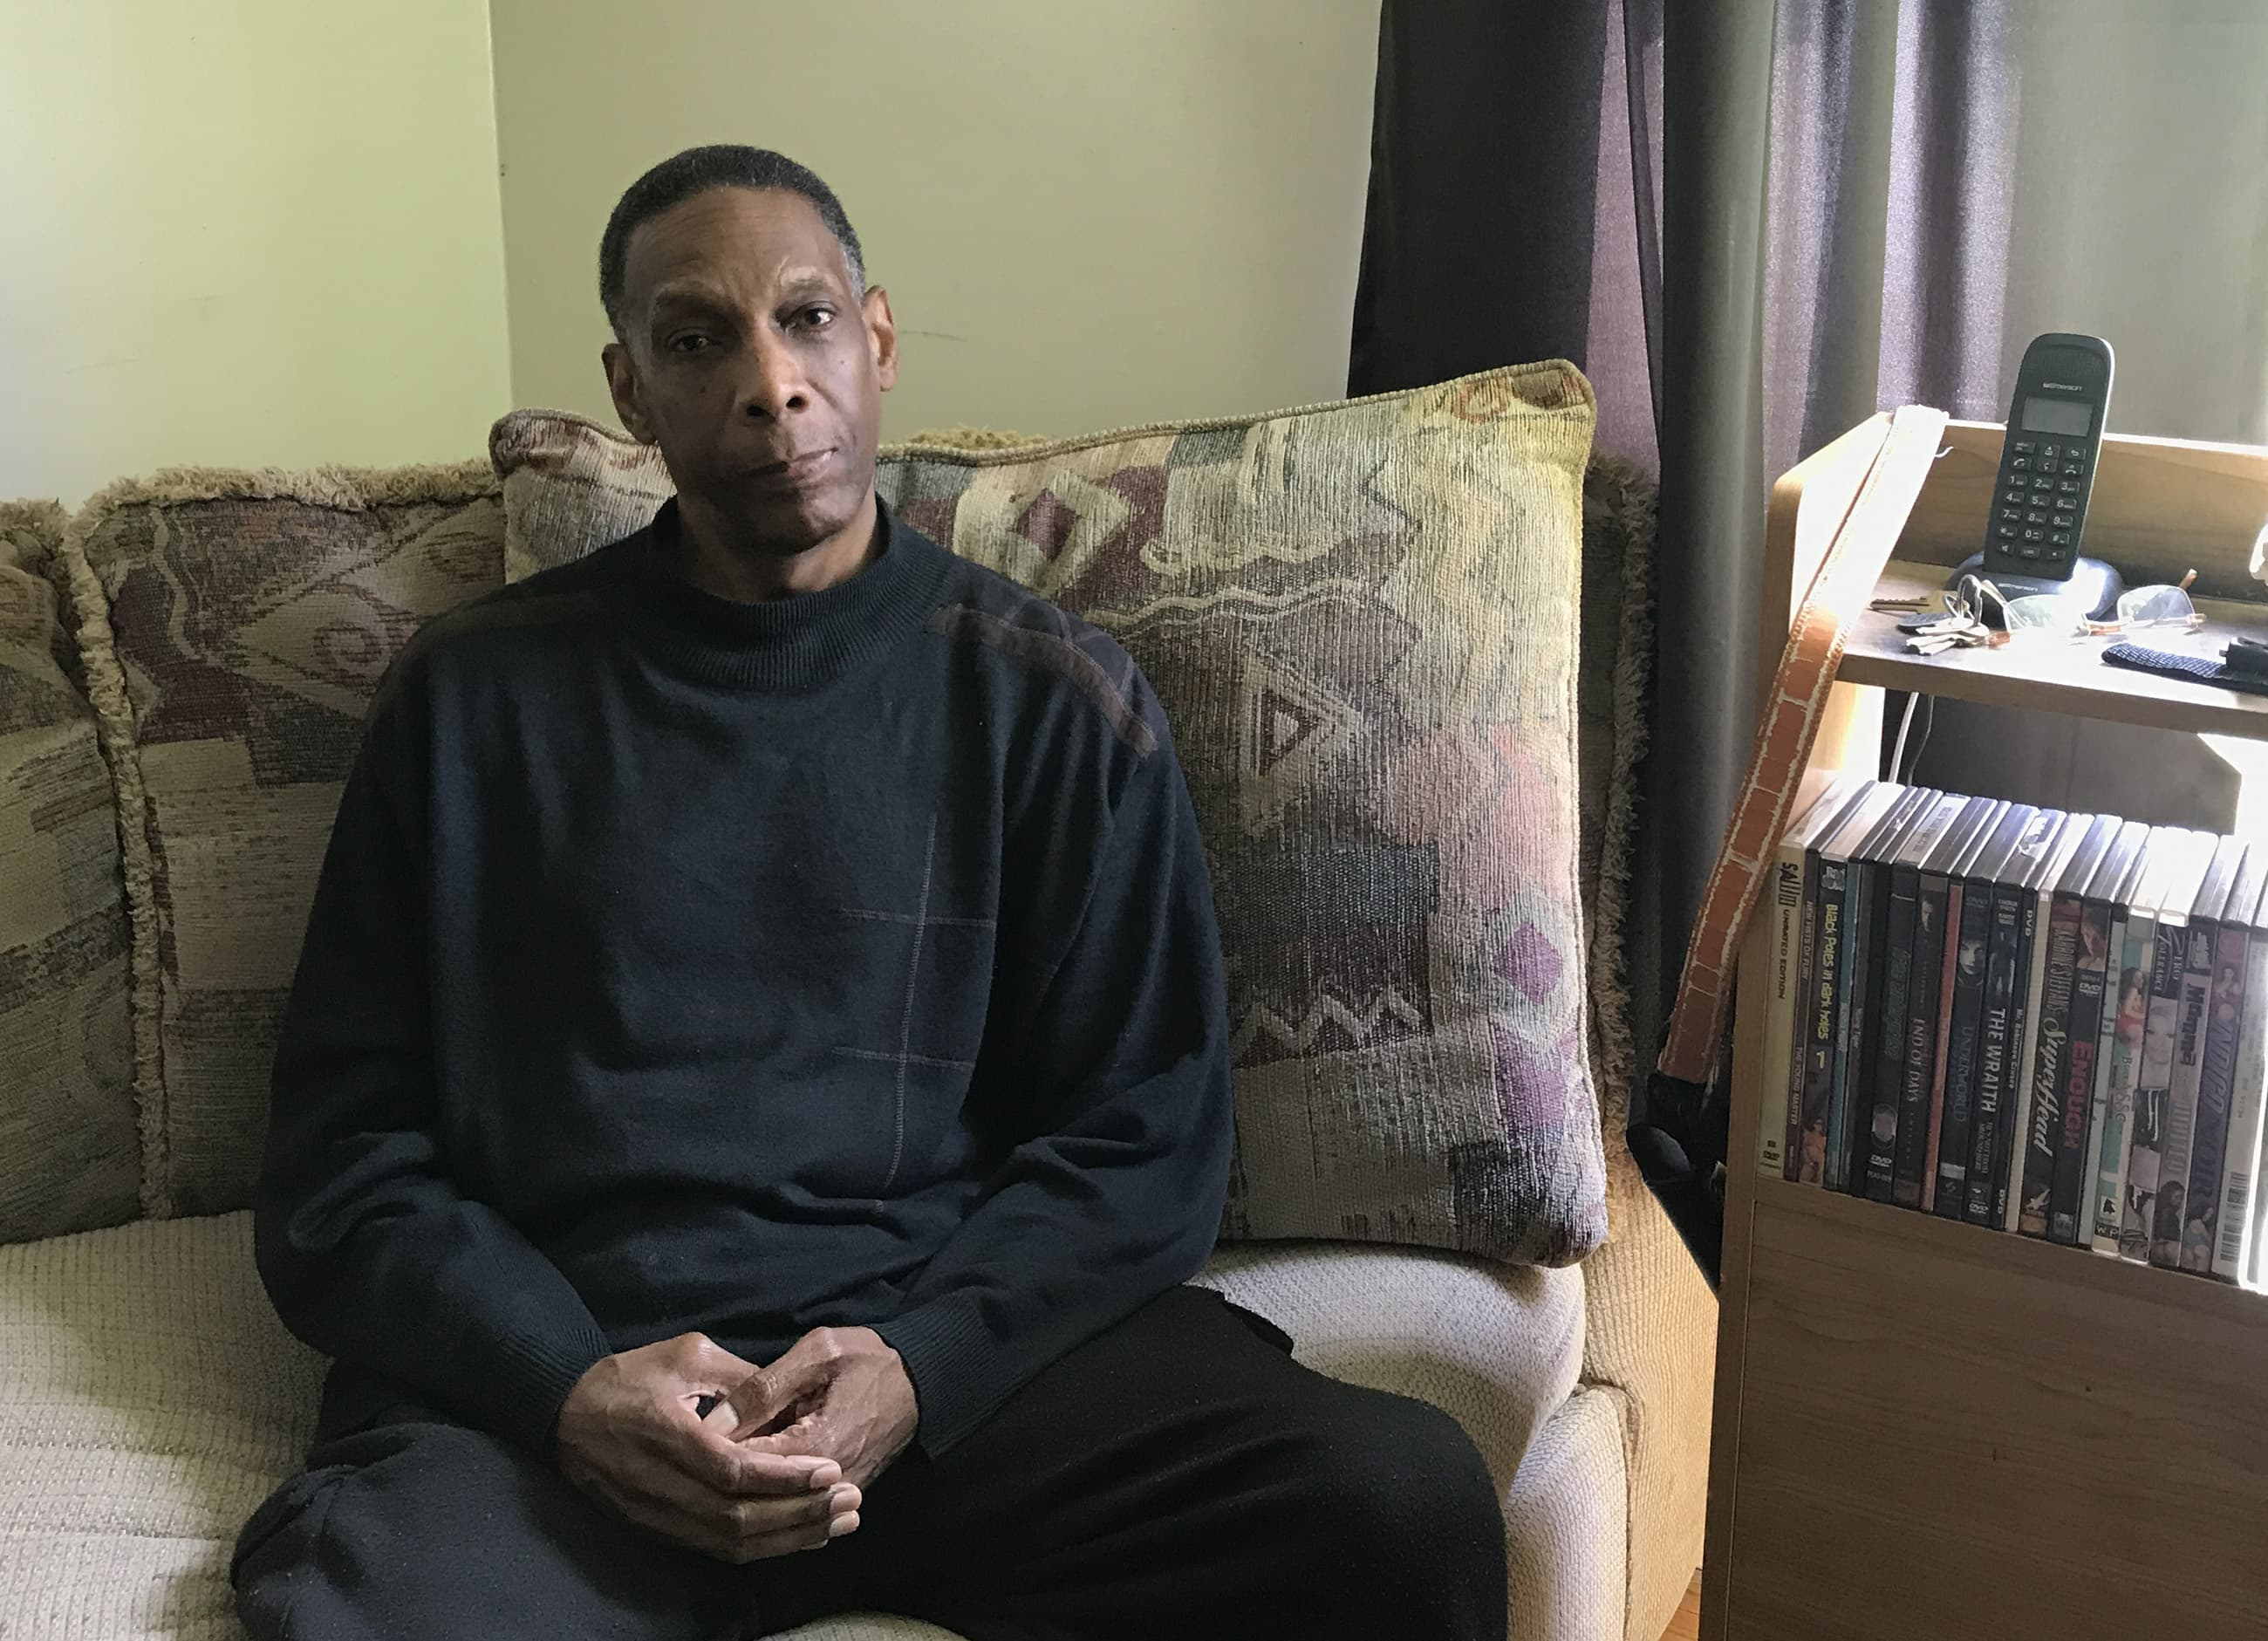 Bruce Allen moved to Syracuse, New York, from New Jersey in 2006. He receives Meals on Wheels three times each week and uses a grocery shopping service biweekly.